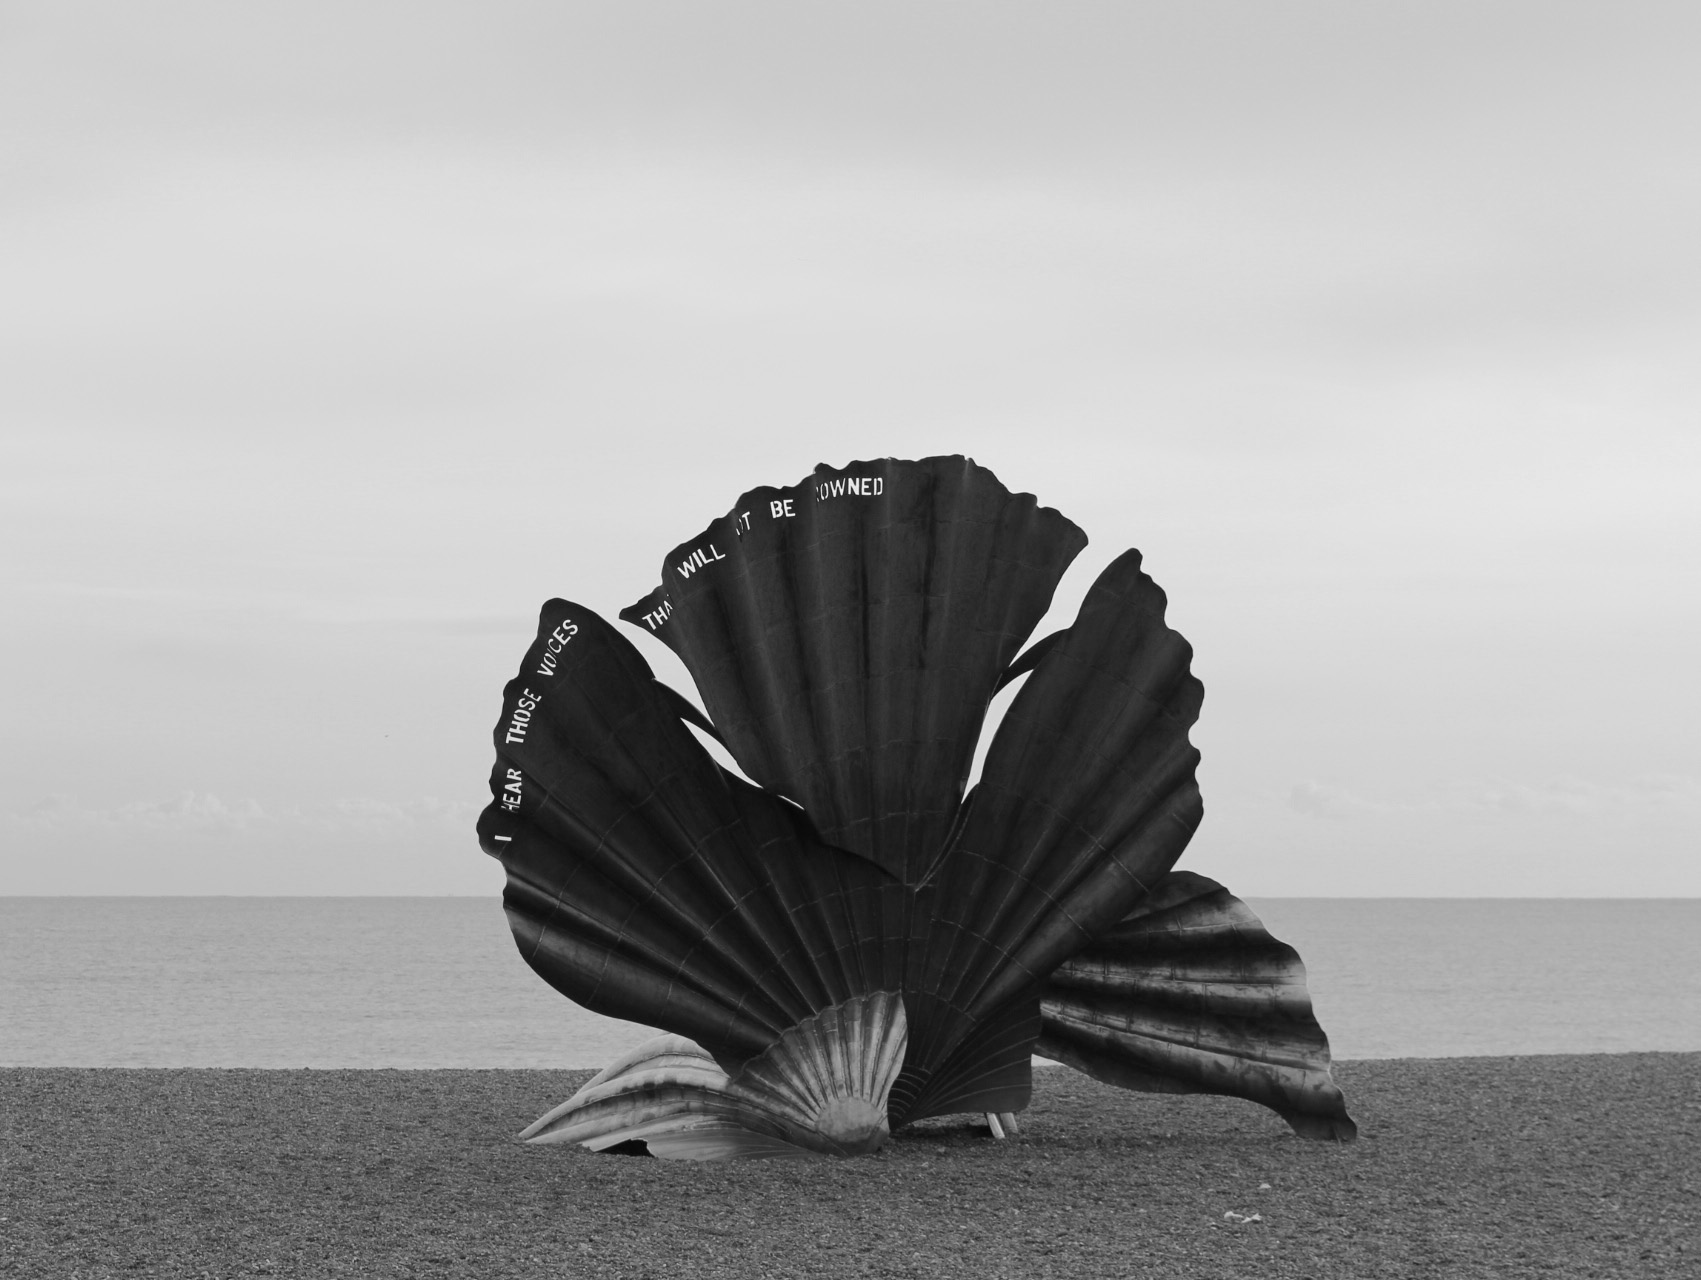 The Scallop at Adleburgh